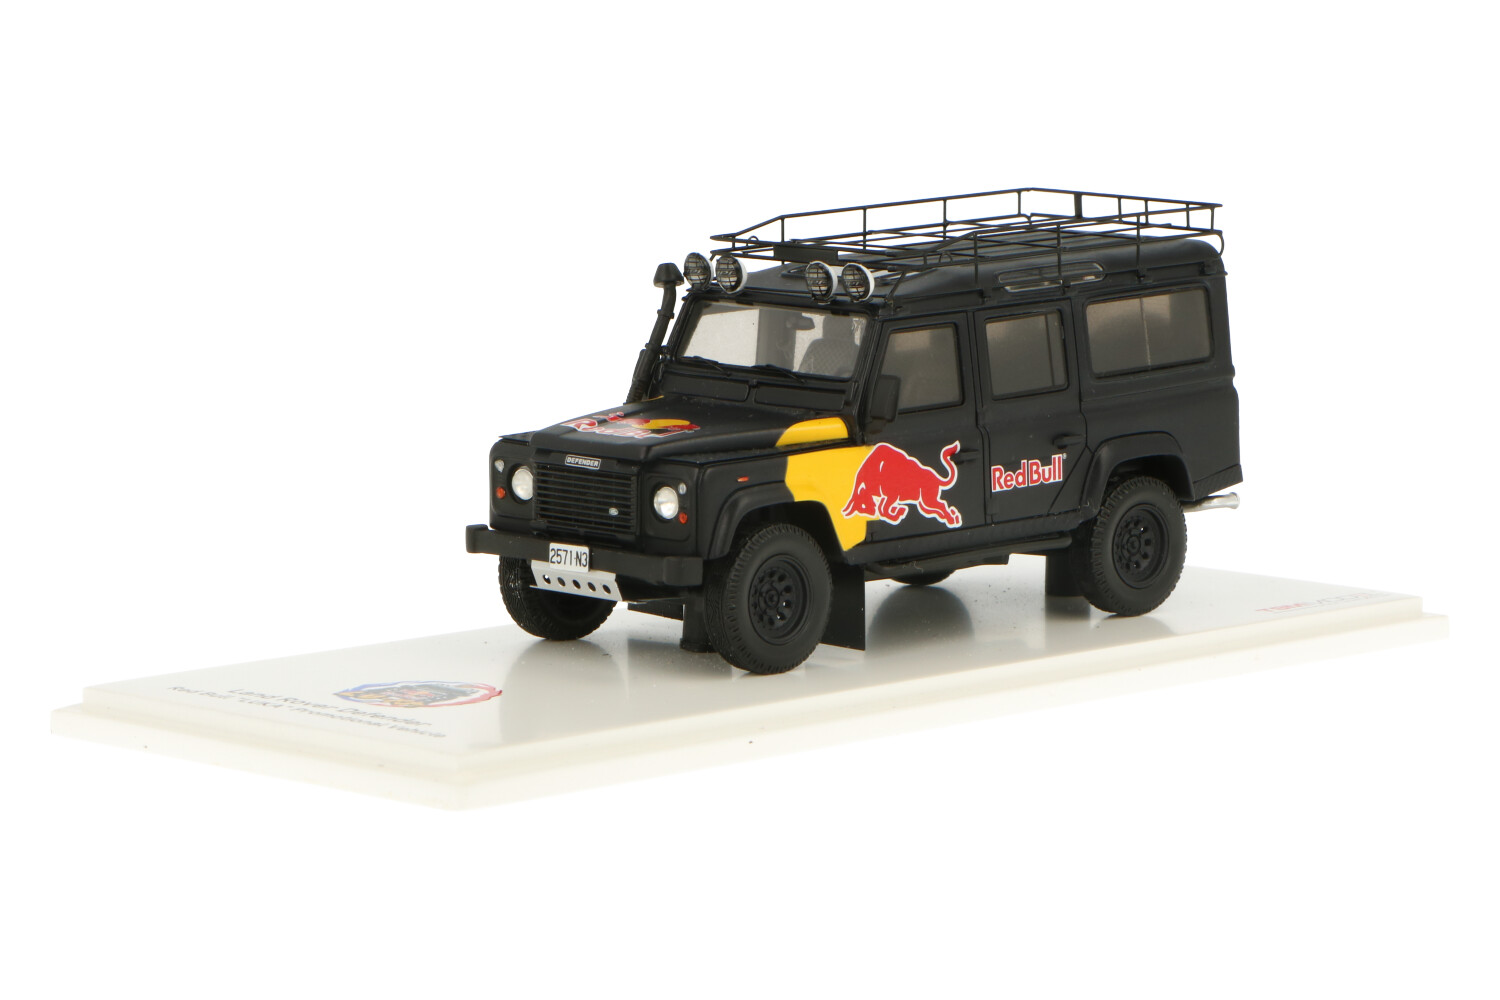 Land Rover Defender Red Bull LUKA Promotional Vehicle - Modelauto schaal 1:43